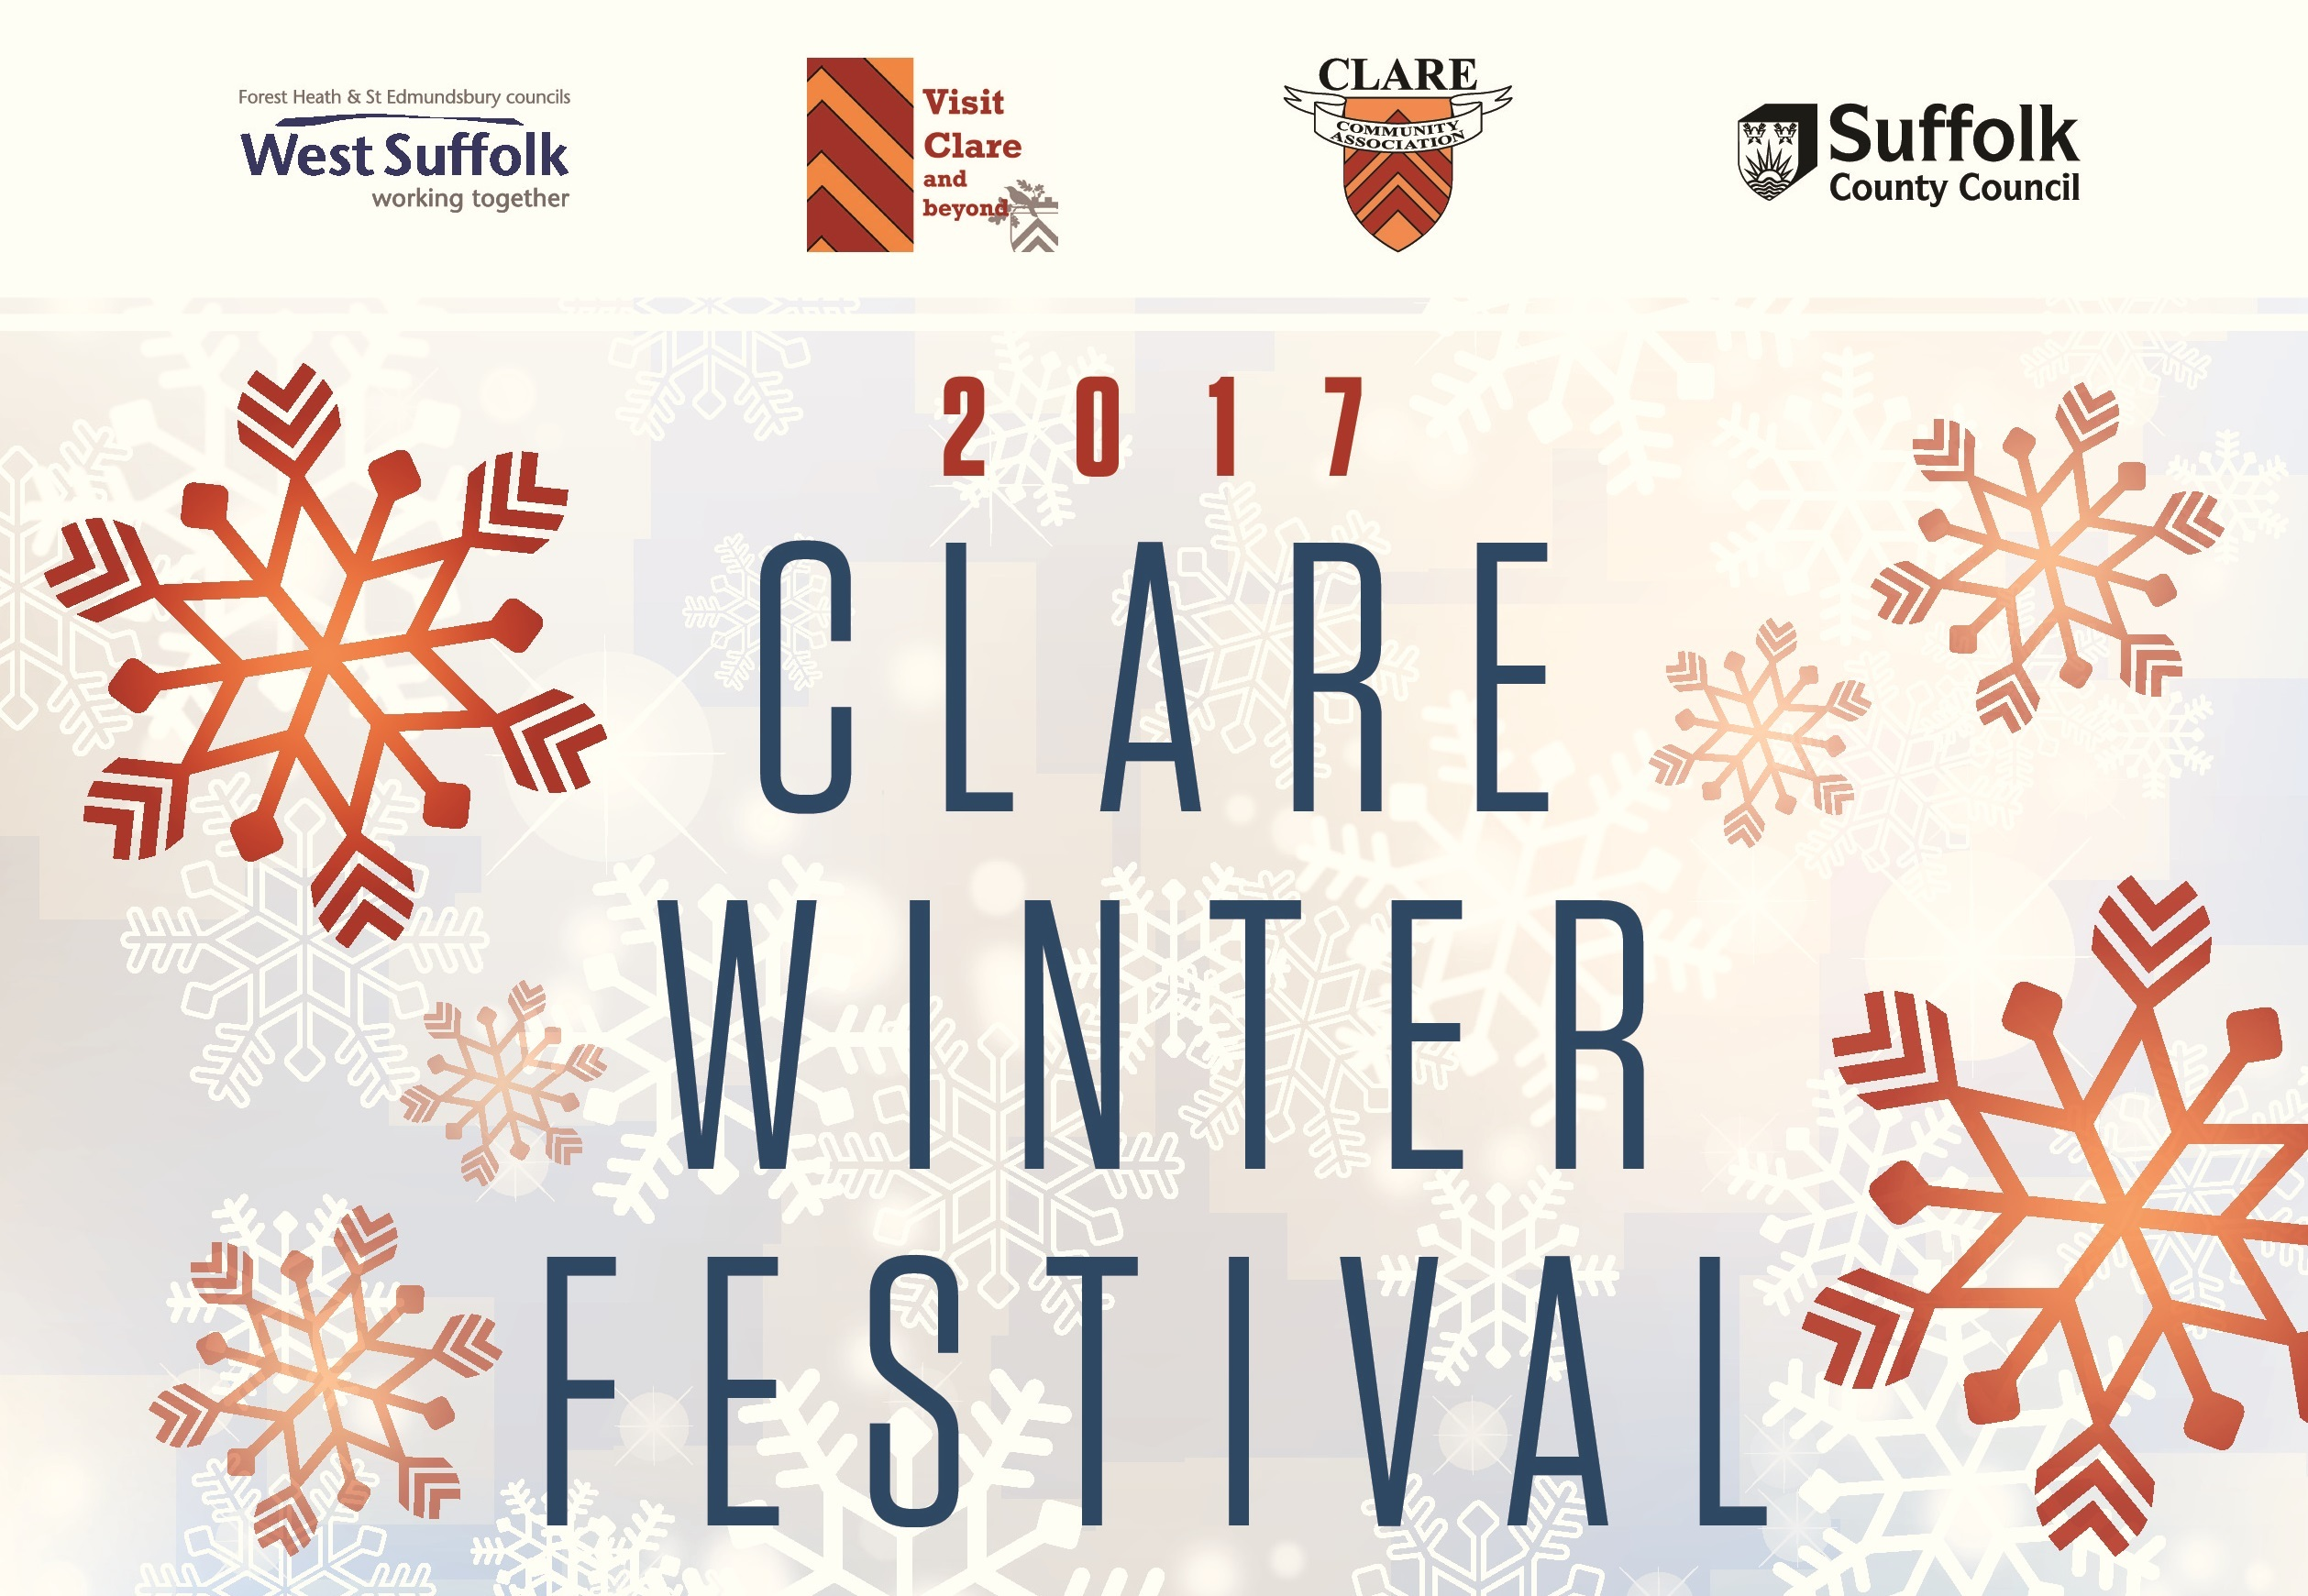 Clare Winter Festival | Blog | Bury St Edmunds and Beyond